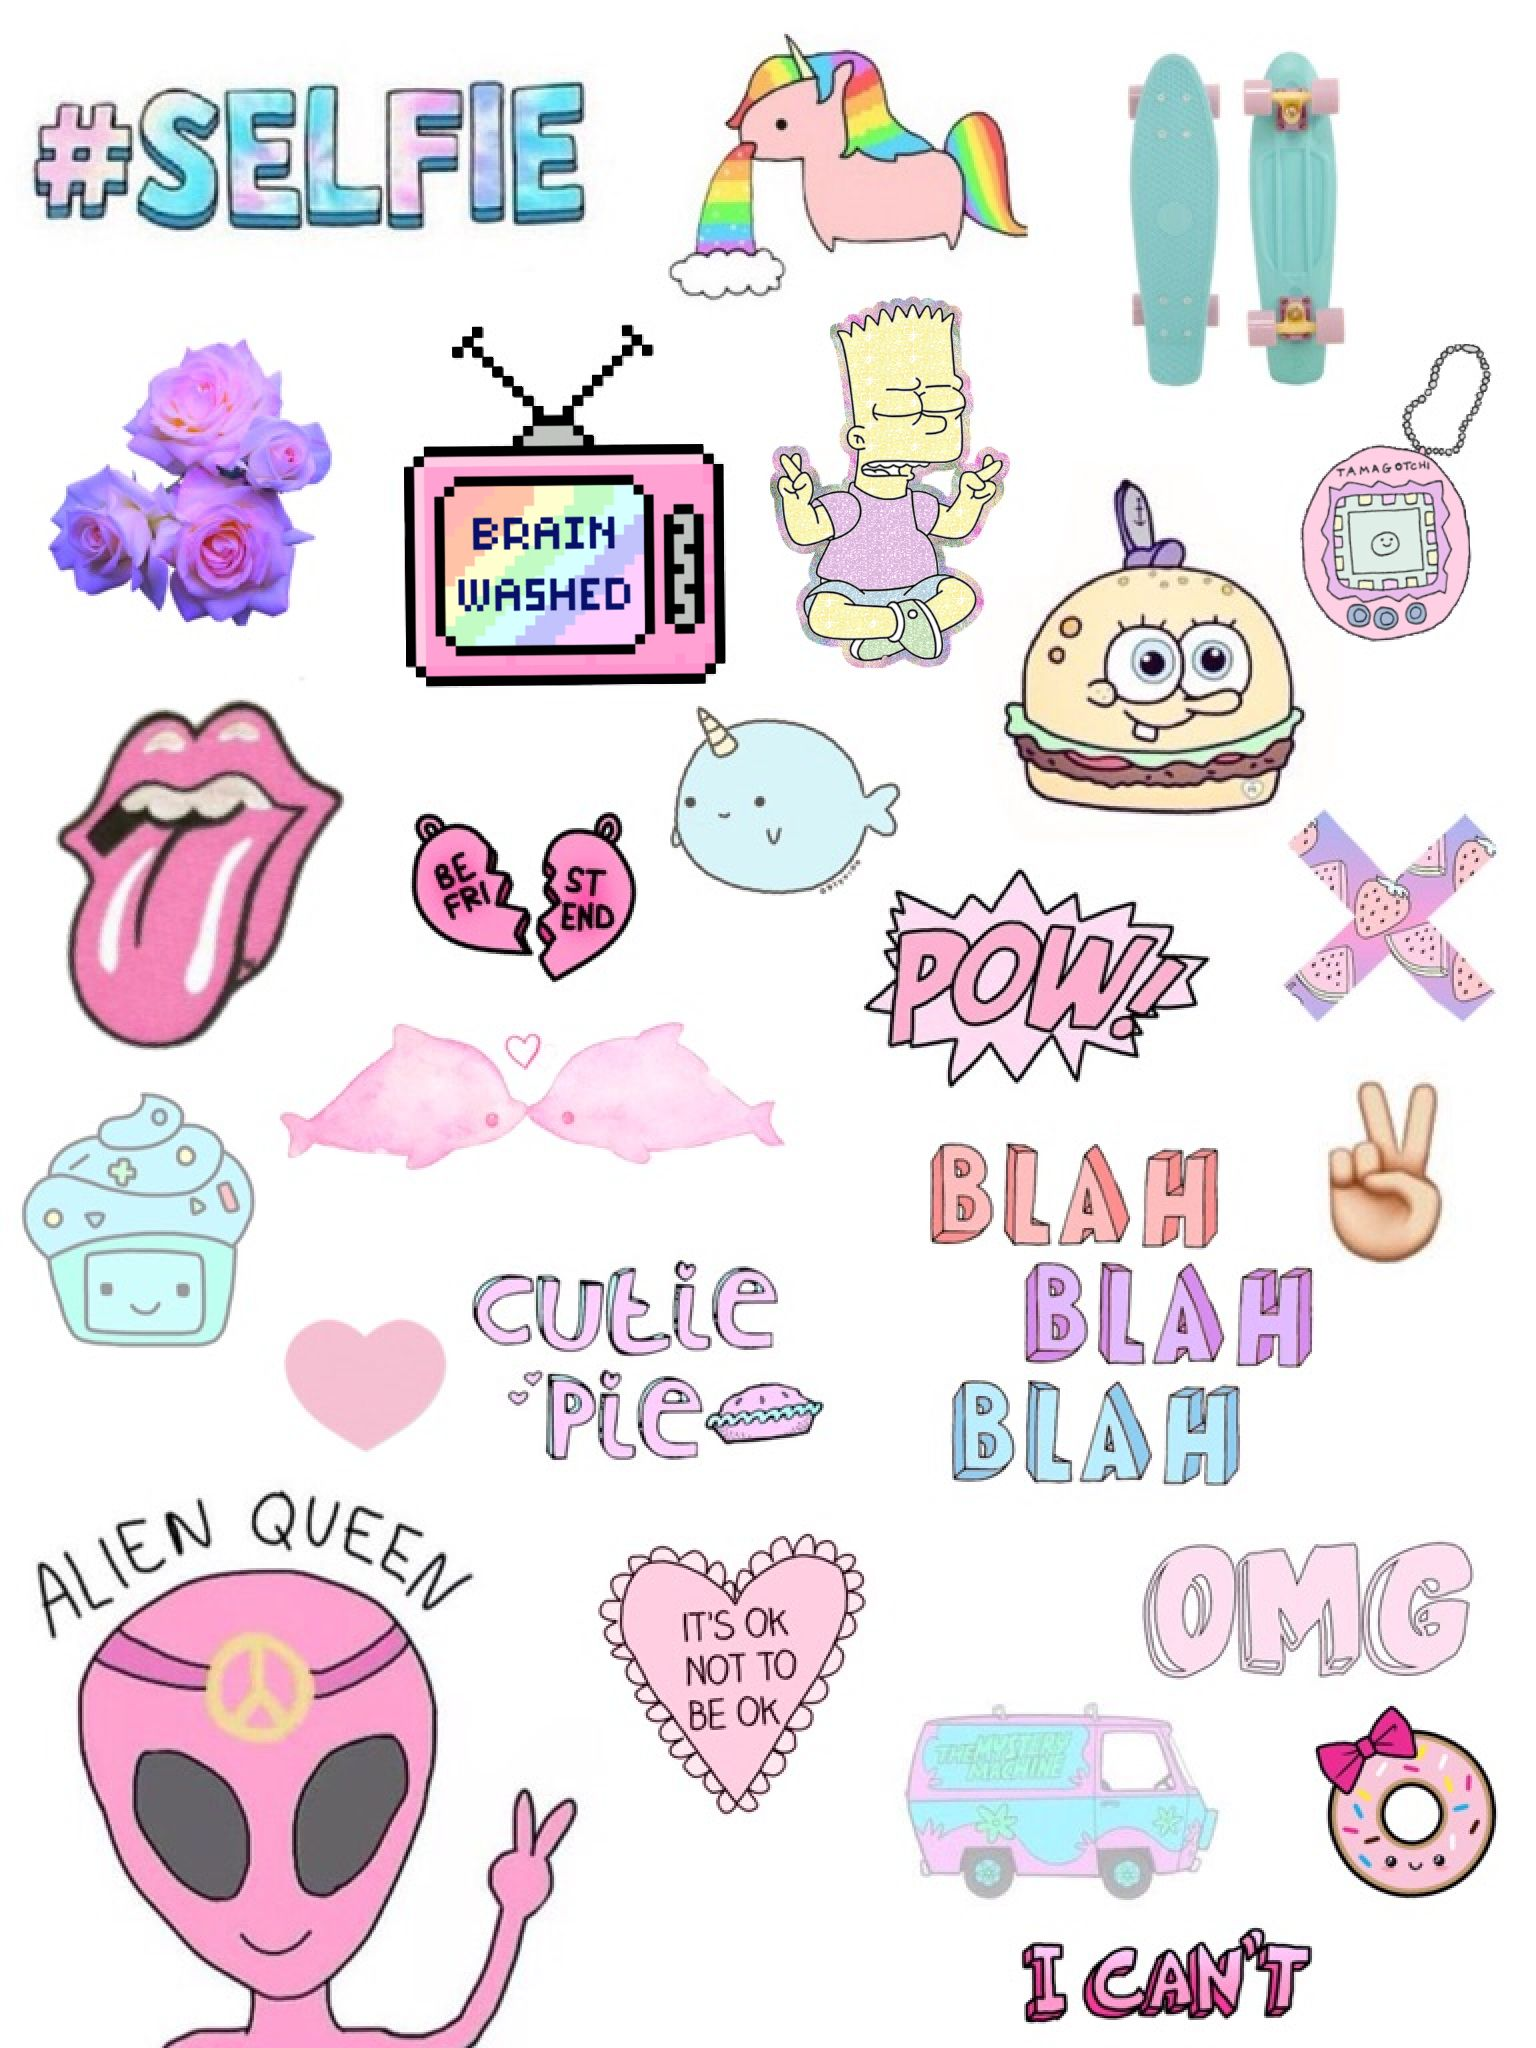 Pin By Emme Honigstock On اشياء كيوت Tumblr Stickers Cute Stickers Aesthetic Stickers